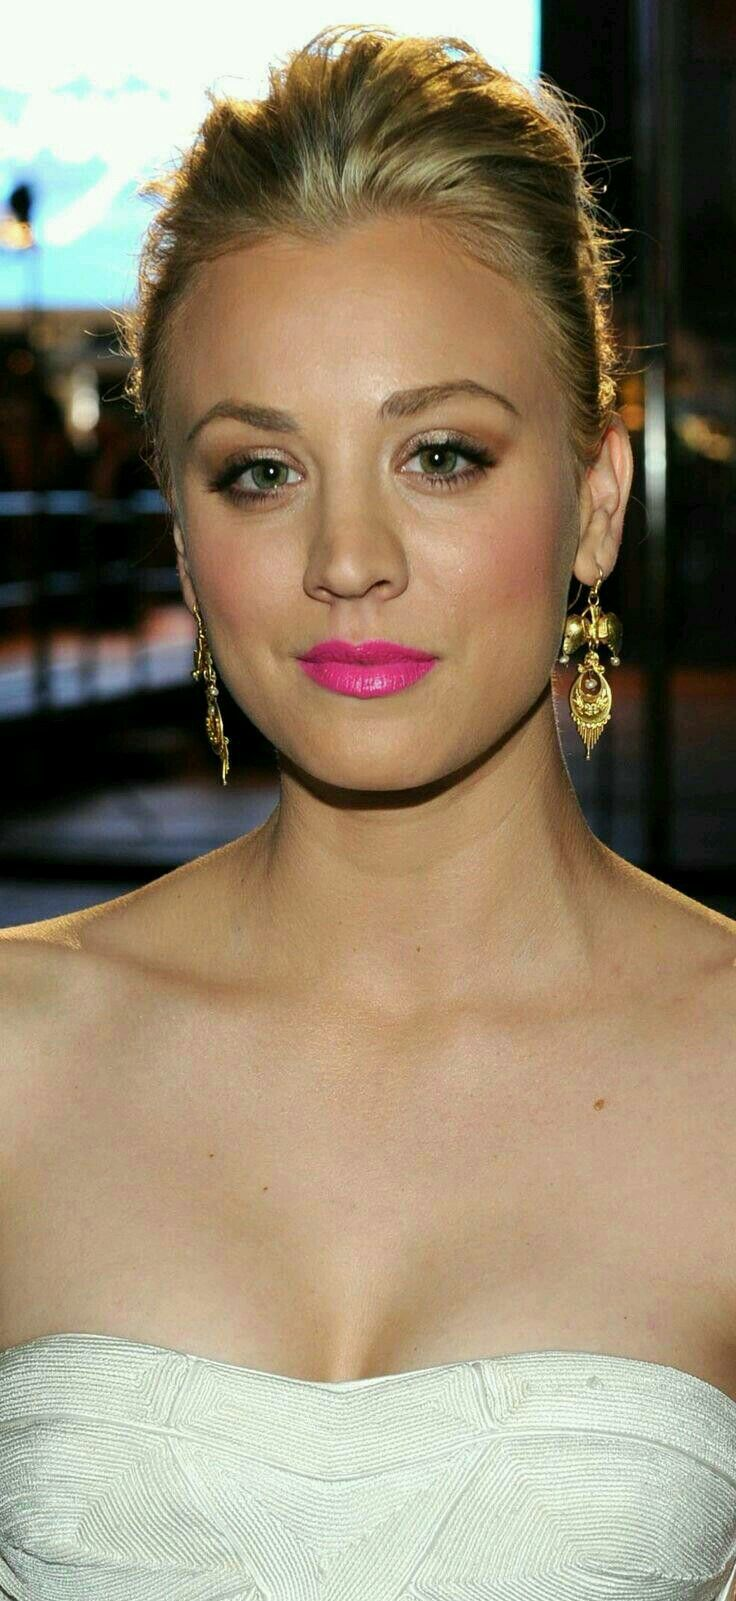 186 best b - kaley cuoco images on pinterest   kaley cuoco, bangs